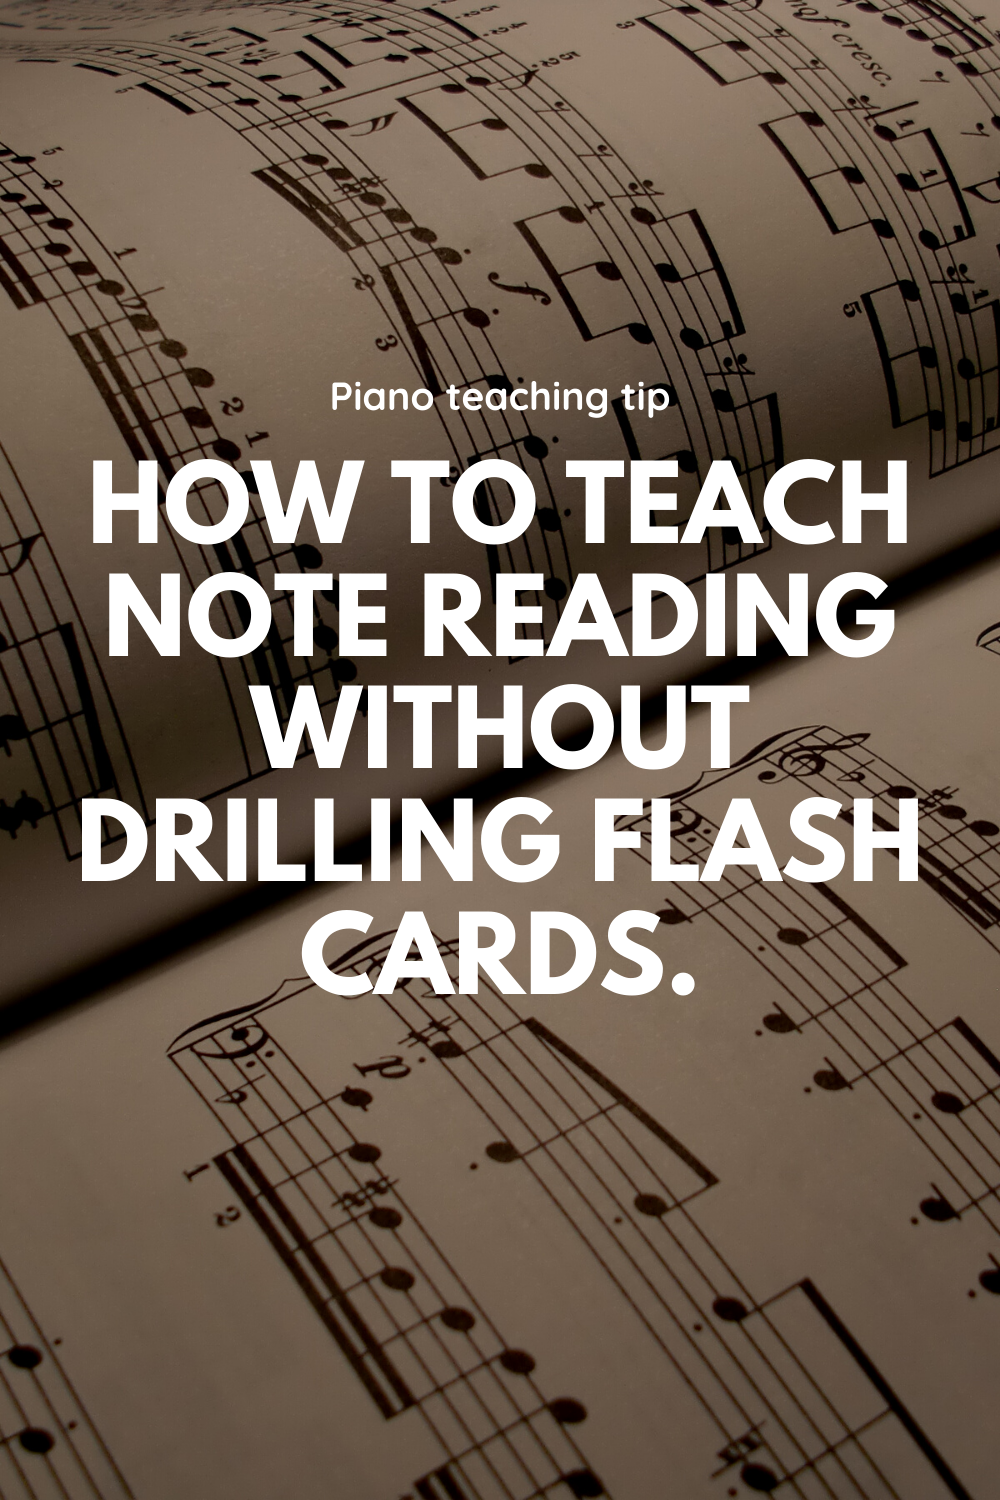 """While you may have some """"flashcard junkies"""" who can rattle off an entire pack without a mistake, you may also have some students who struggle and stammer through the set. For these students, either put the deck of flashcards away or find an alternate use beyond drill, drill, drill. Here are 8 ideas for how to teach note reading without them.While #you #may #have #some #""""flashcard #junkies"""" #who #can #rattle #off #an #entire #pack #without #a #mistake, #you #may #also #have #some #students #who #"""